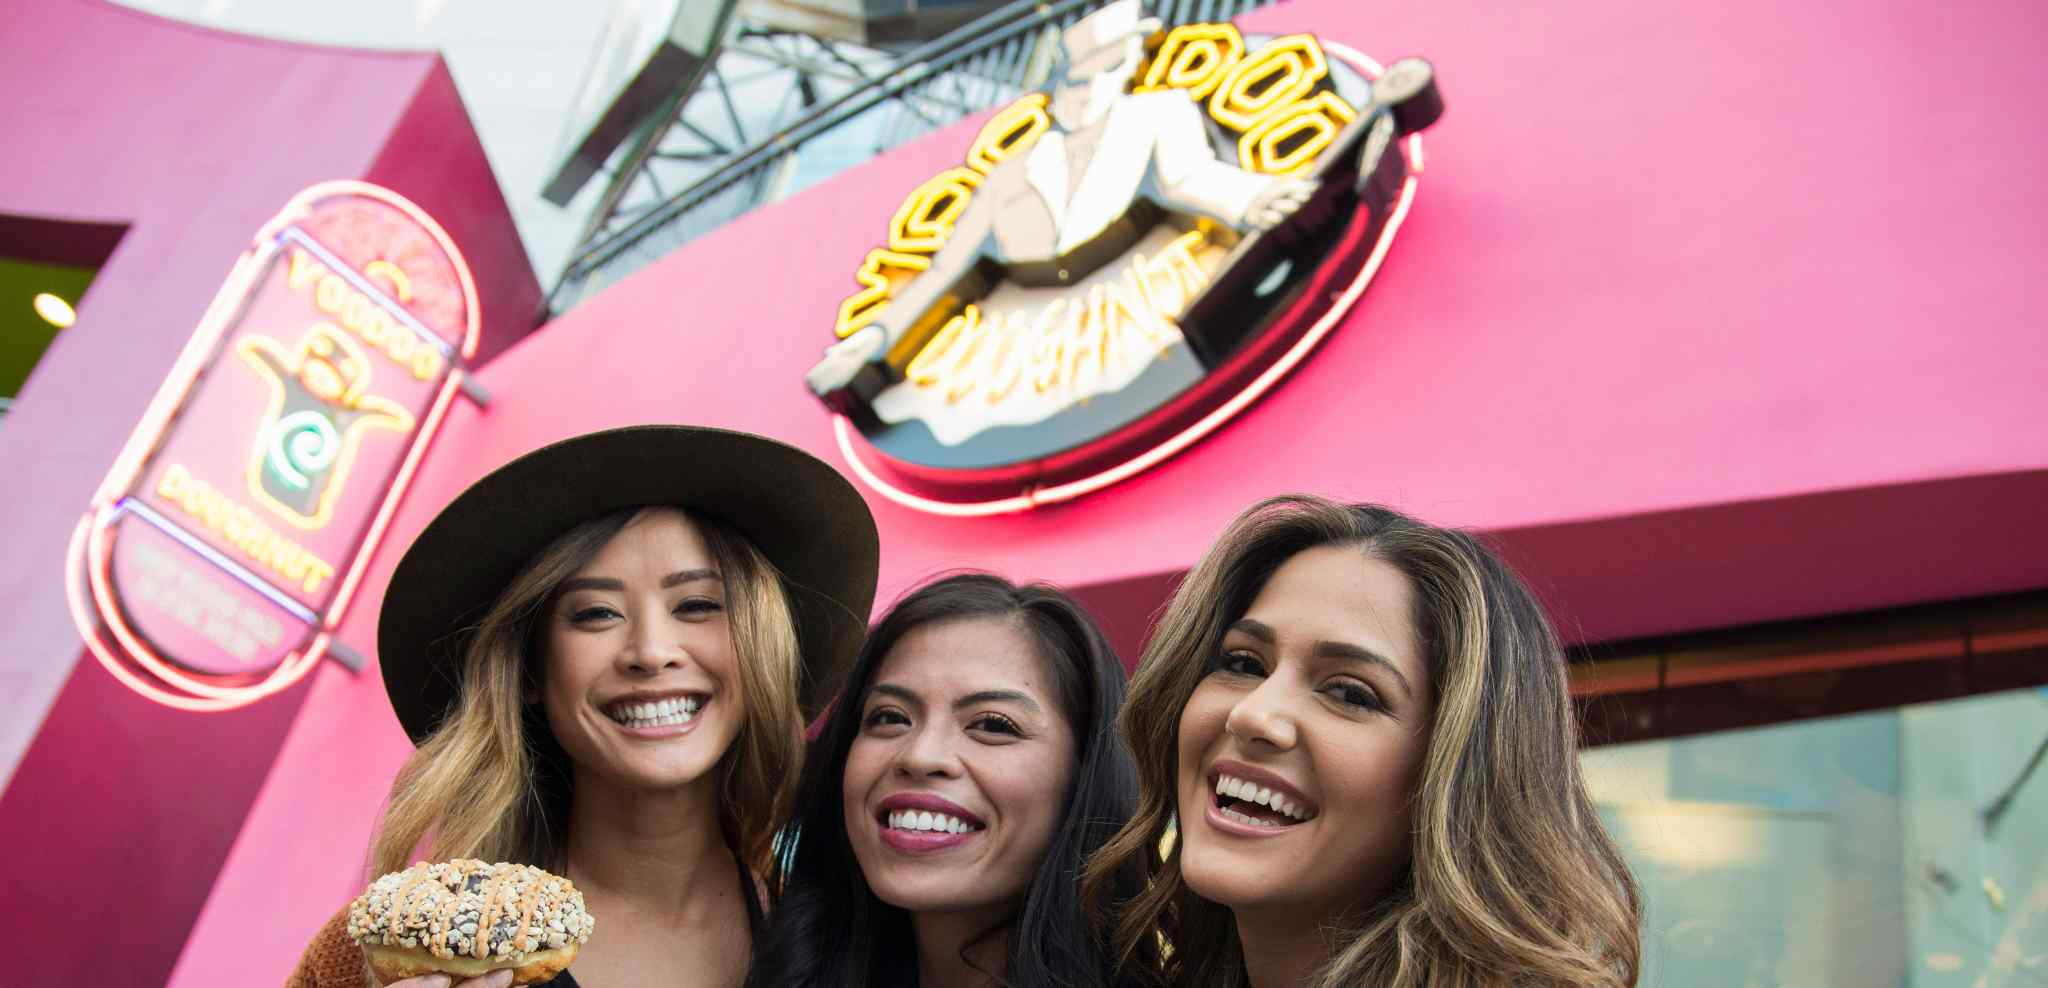 Three ladies posing in front of Voodoo Doughnut shop holding donuts